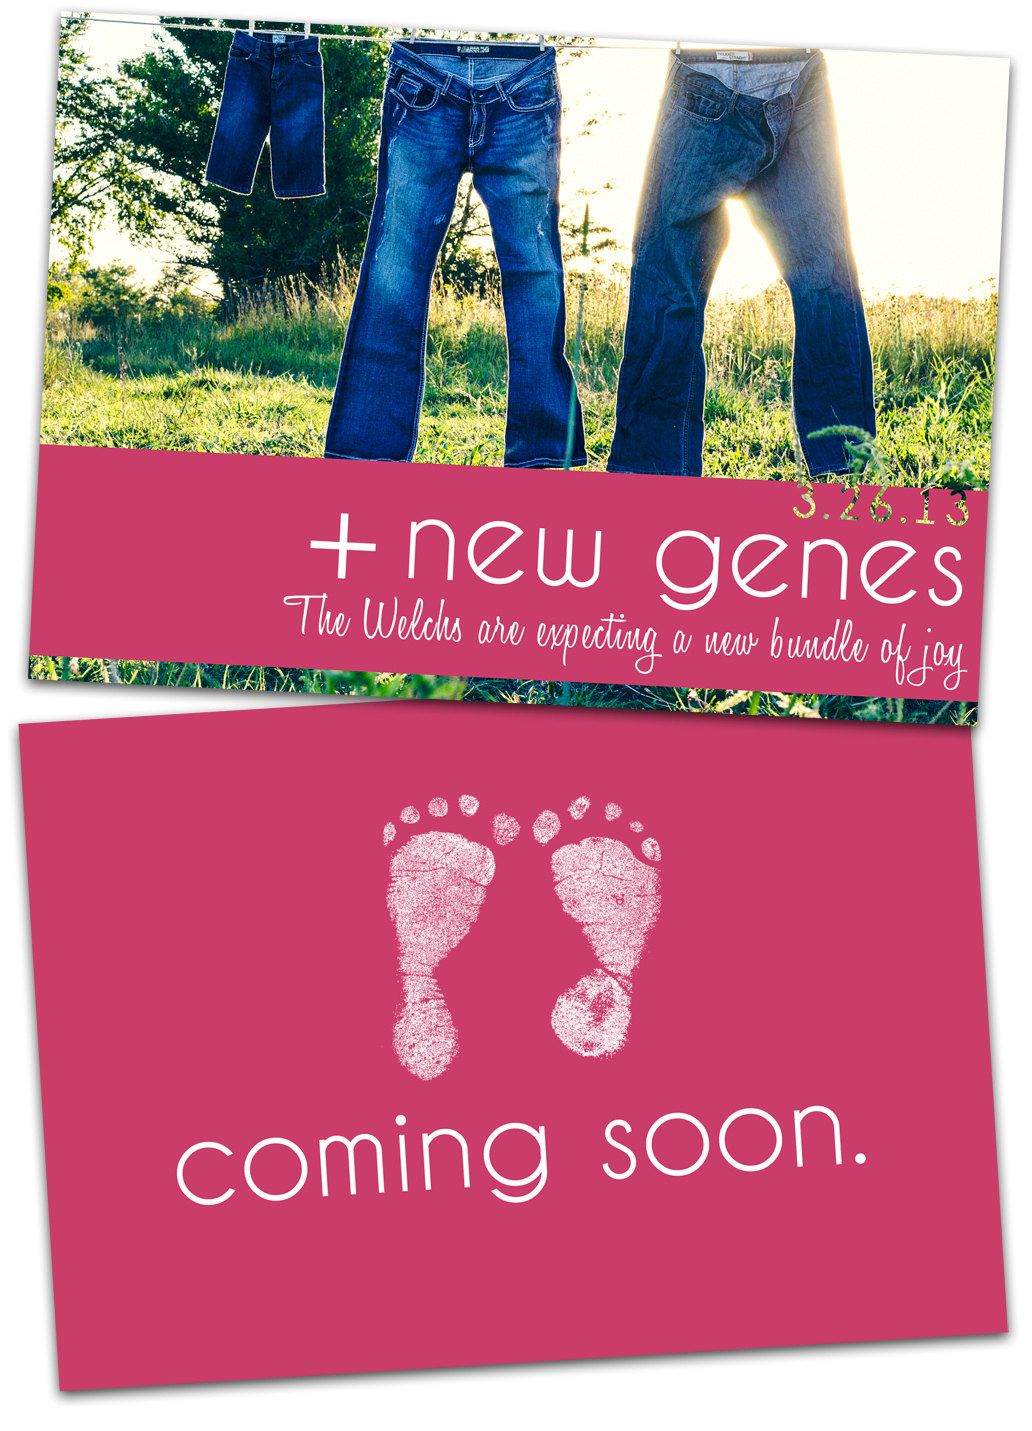 pregnancy announcement card  new baby genes  coming soon  expecting a baby announcement